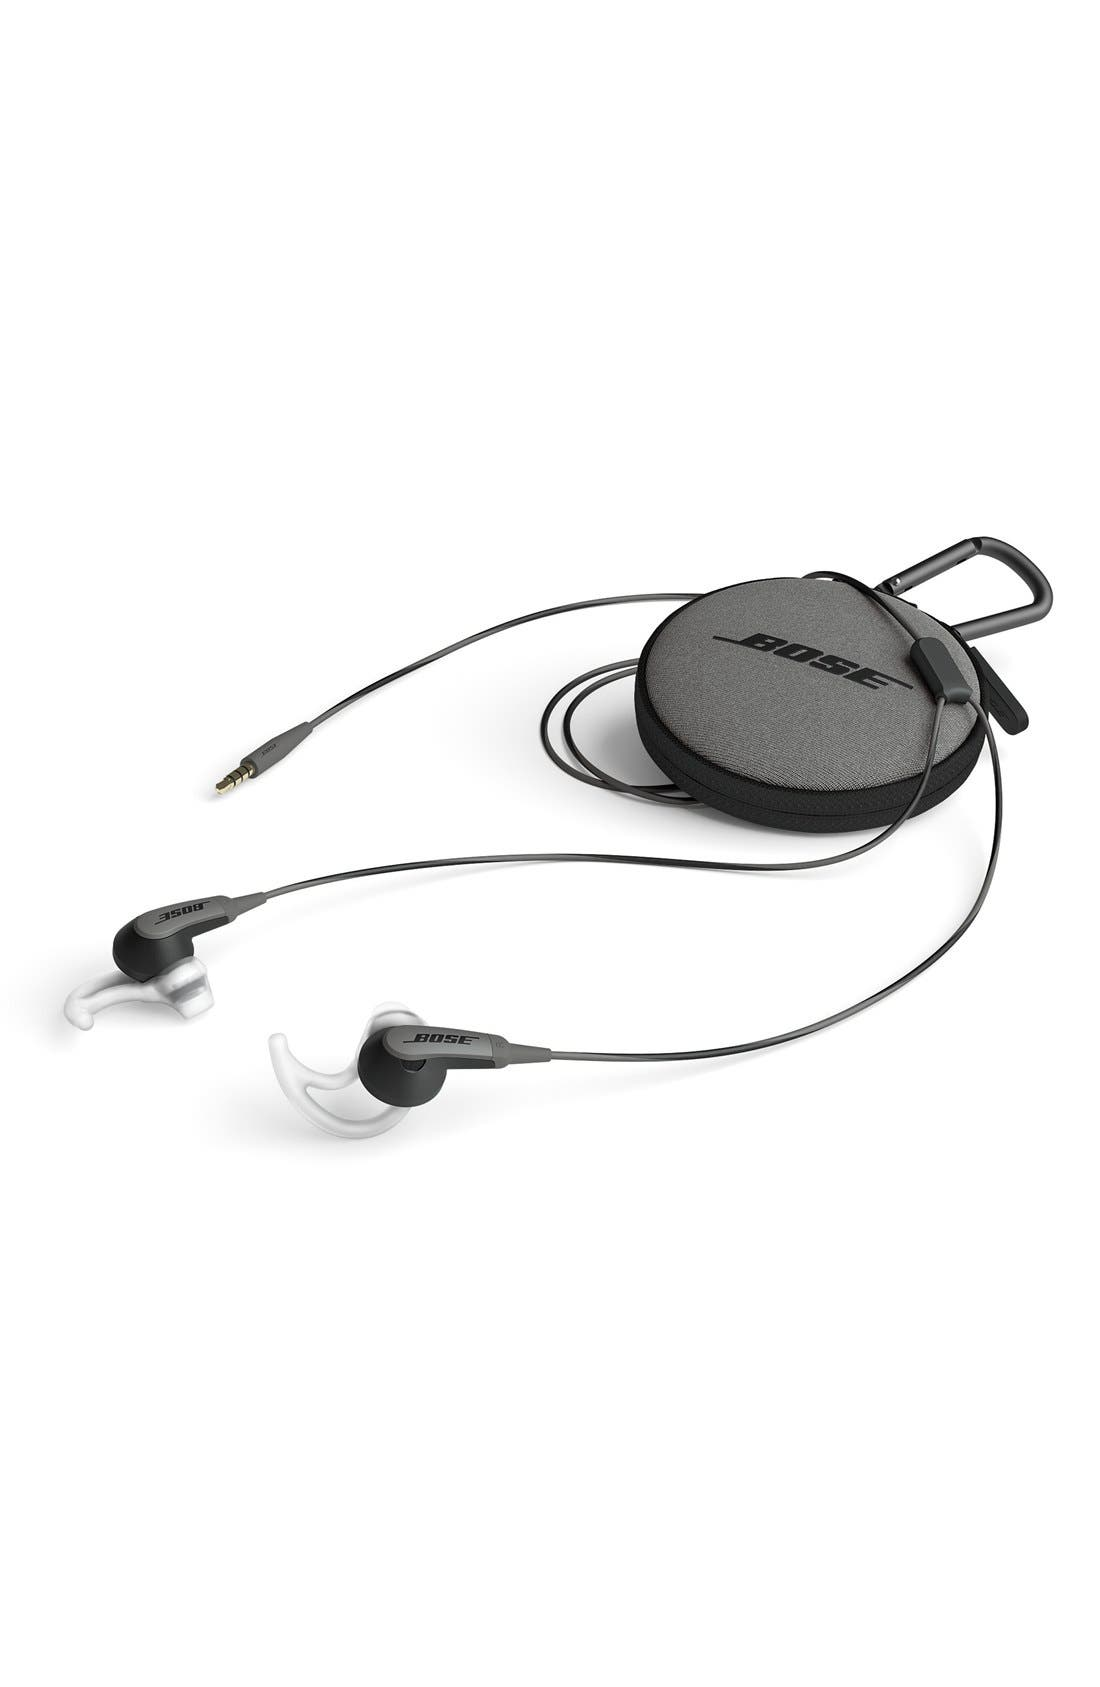 SoundSport<sup>®</sup> In-Ear Audio Only Headphones,                             Alternate thumbnail 3, color,                             021